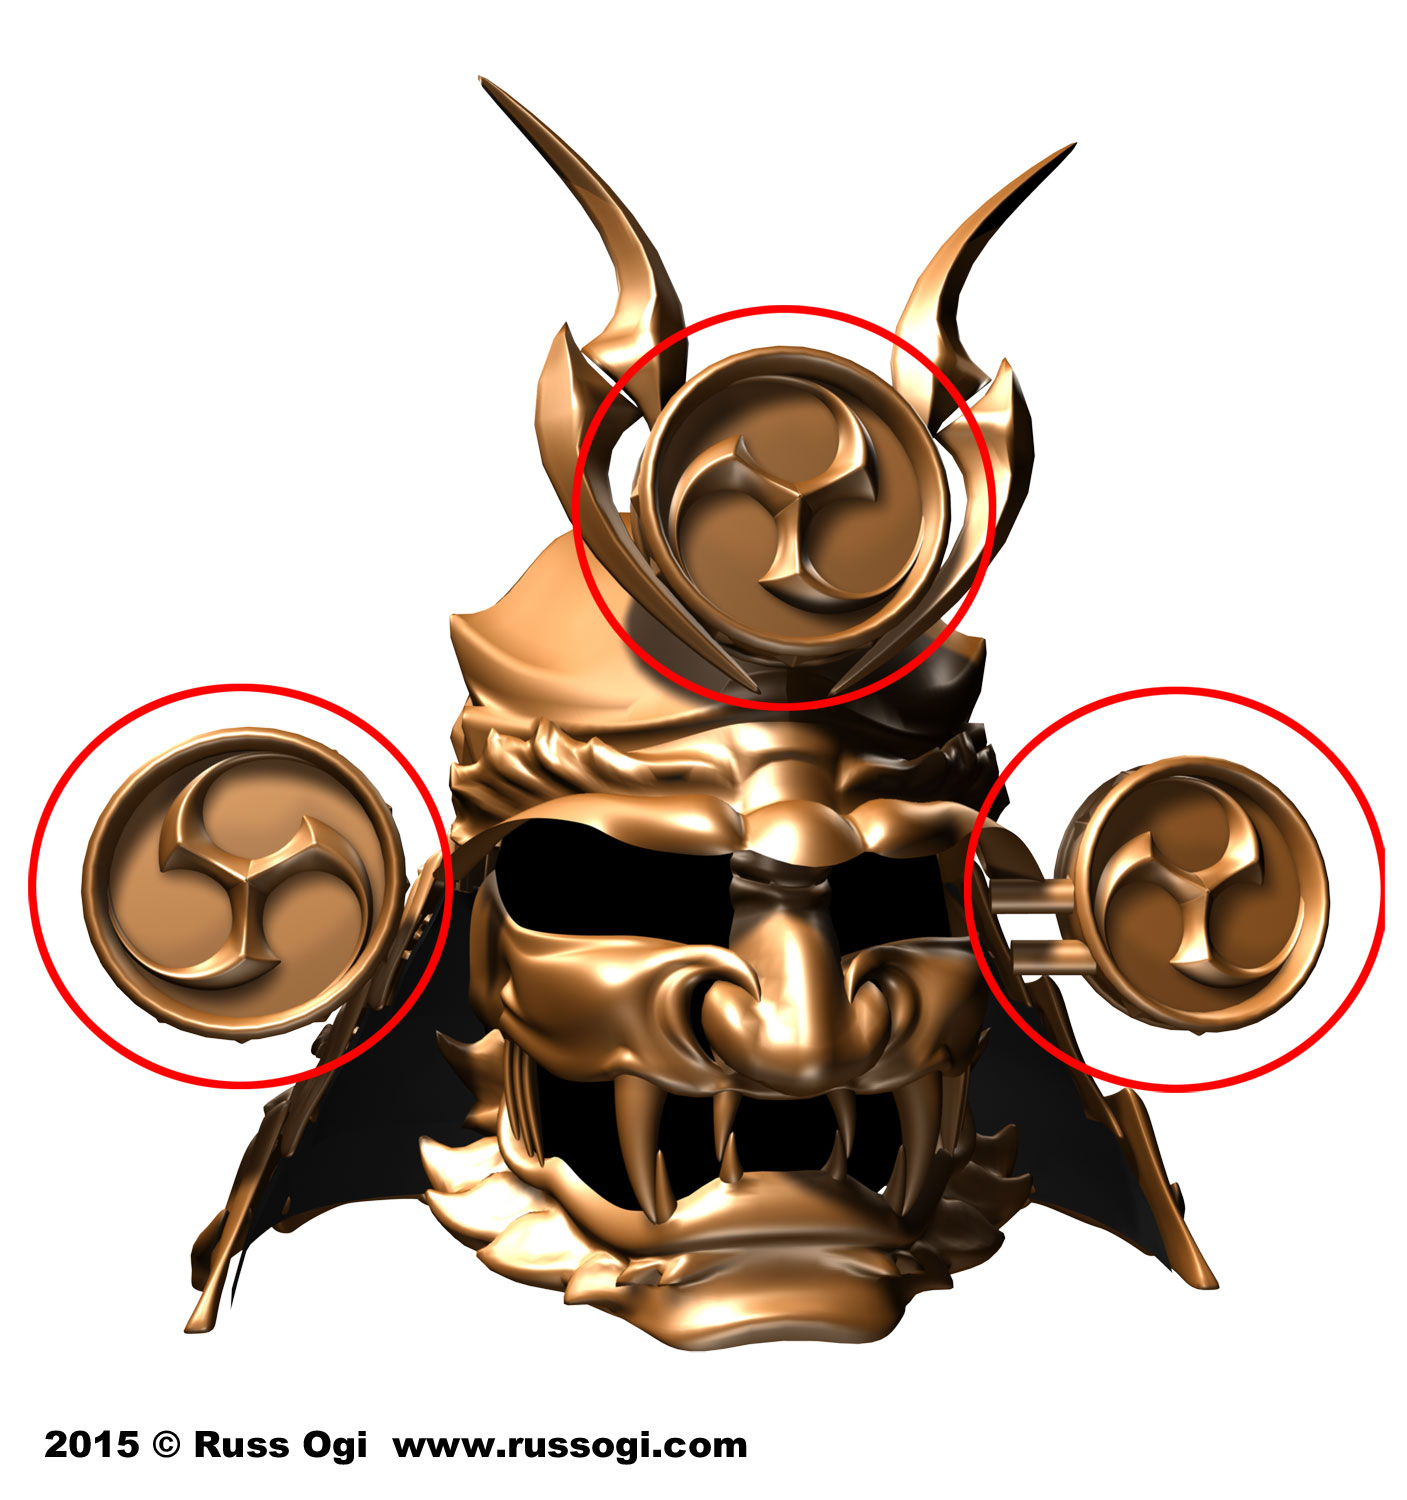 Raijin's drums are incorporated into the maedate (front crest) and fukigaeshi (ear-like wings) .